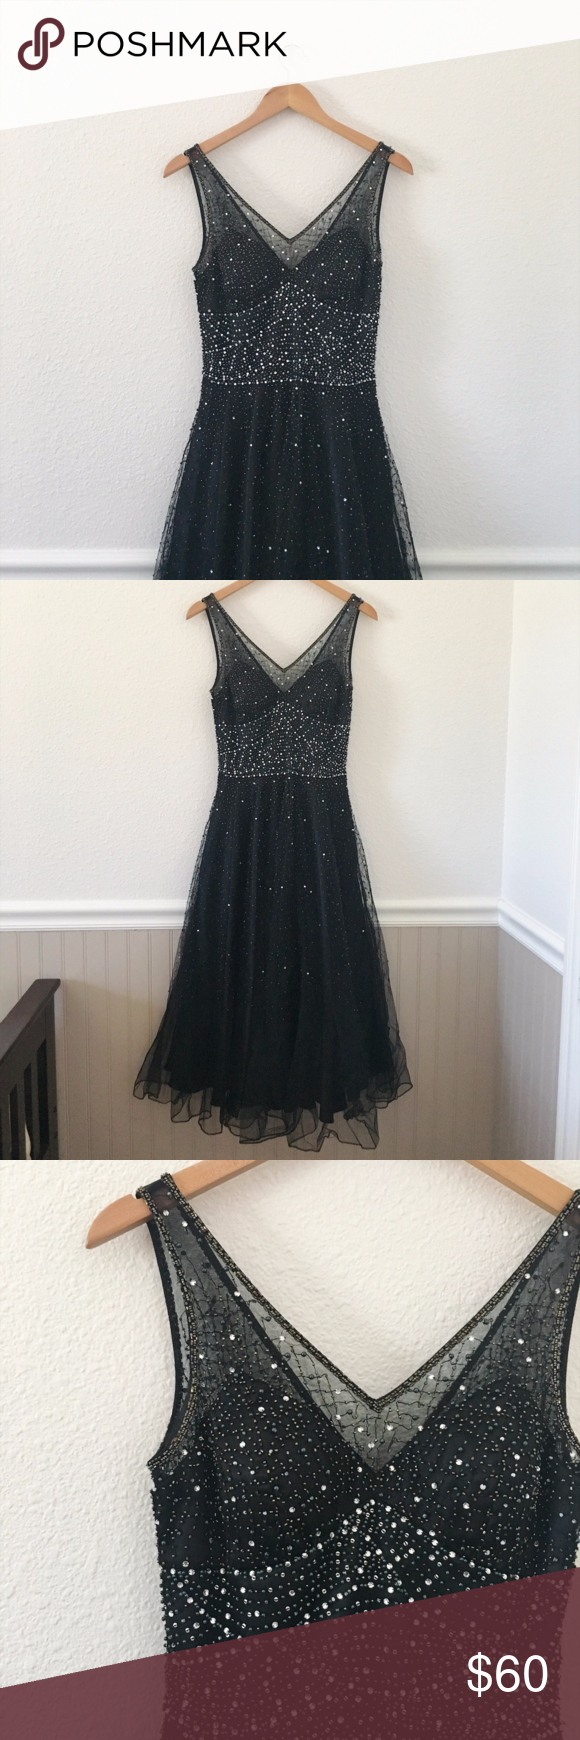 VINTAGE Black Beaded Tea Length Formal Dress This is a gorgeous tea-length formal dress! It has a v-neck in the front and back, with a beaded bodice and full skirt. I adored this dress, but was never able to fit into it. There are a few beads missing (picture included), but other than that it is in great condition! Sue Wong Dresses Prom